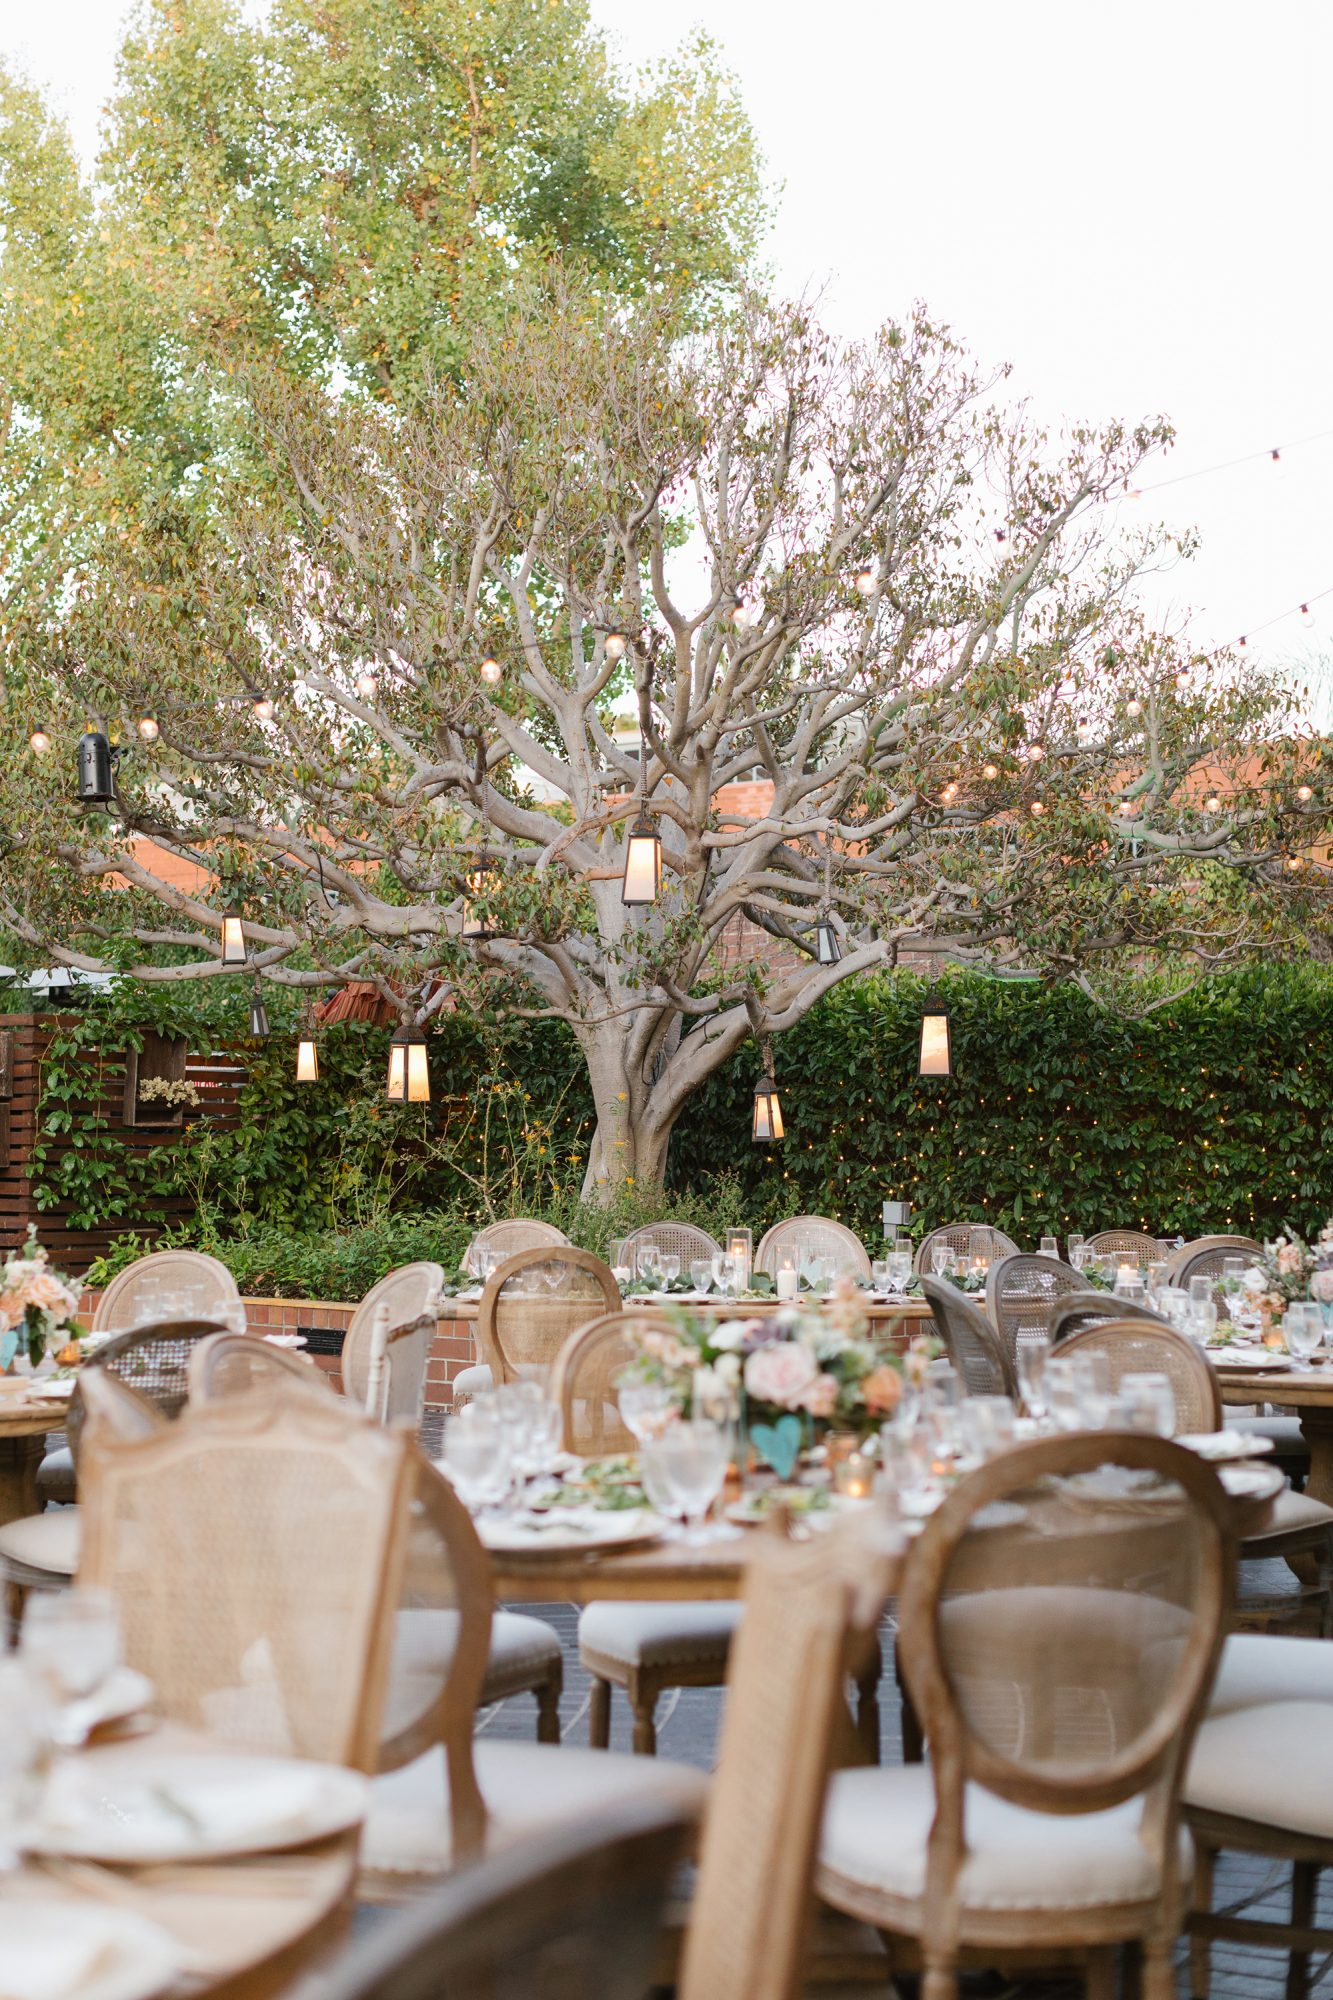 shelana kevin wedding reception seating and tree decor with hanging lights